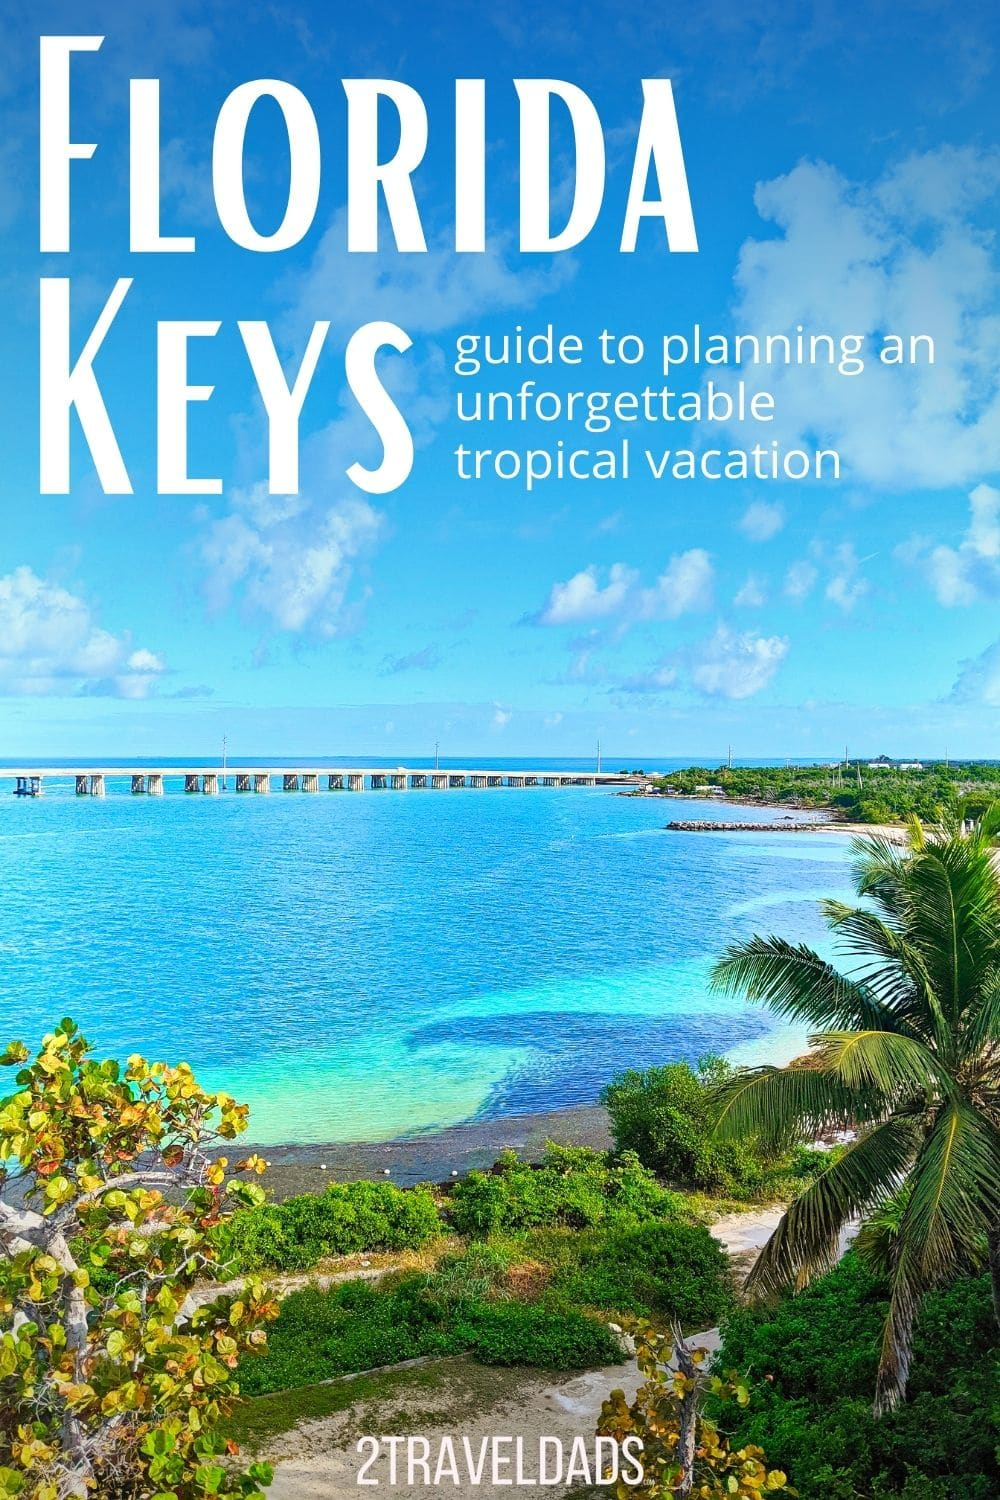 Complete guide to plan a Florida Keys vacation, from which islands to stay one, Florida Keys resorts and vacation rentals for families, and how to get to the Keys whether it's flights to Key West or a road trip.